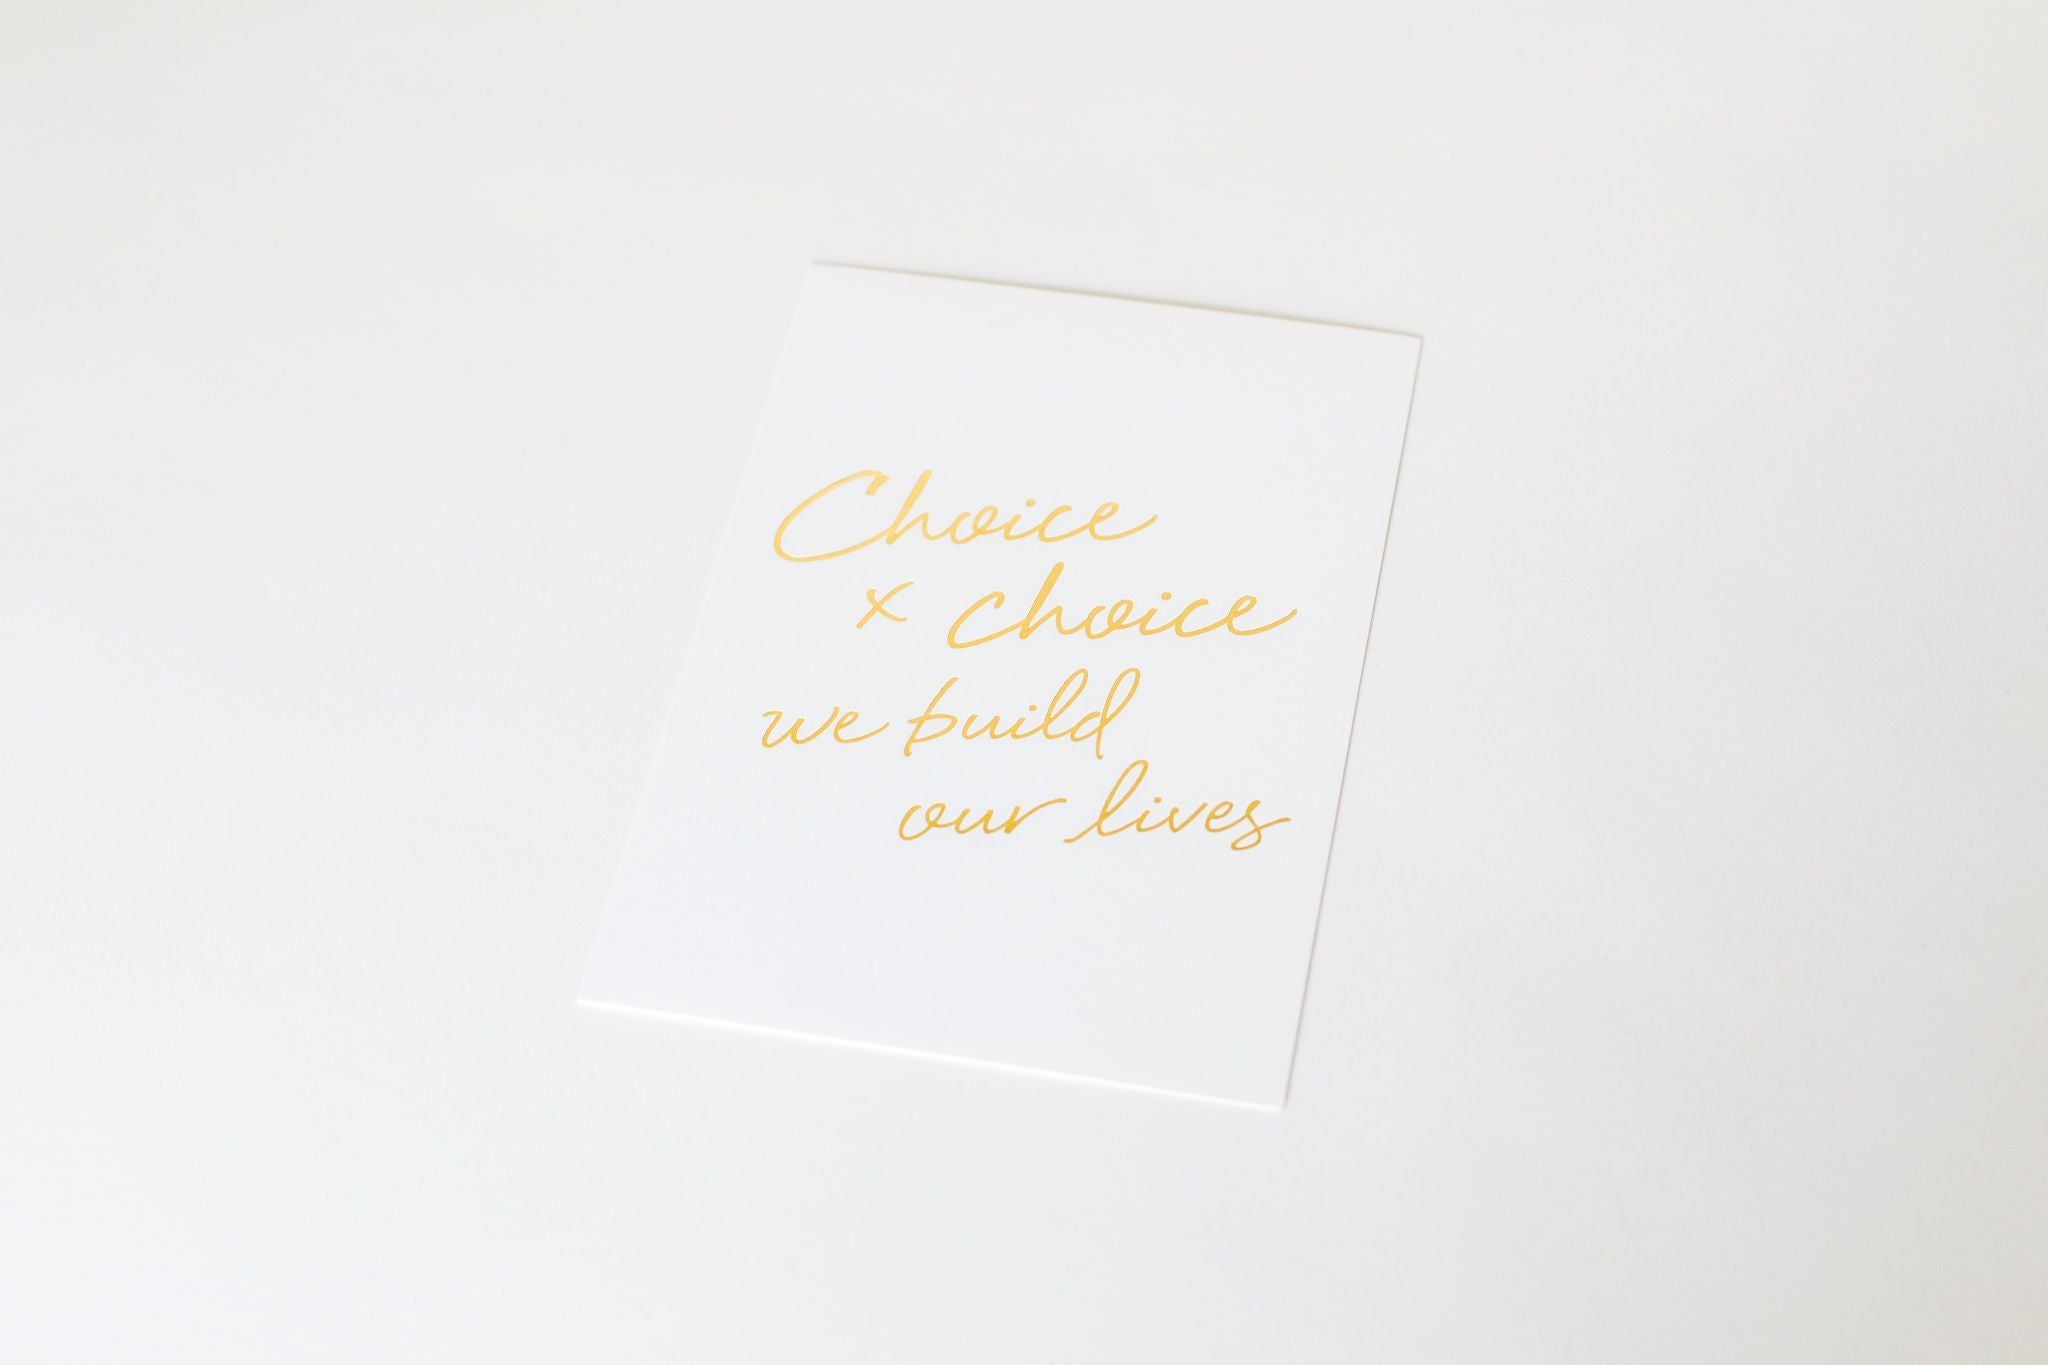 Art Print - Choice x Choice 5x7